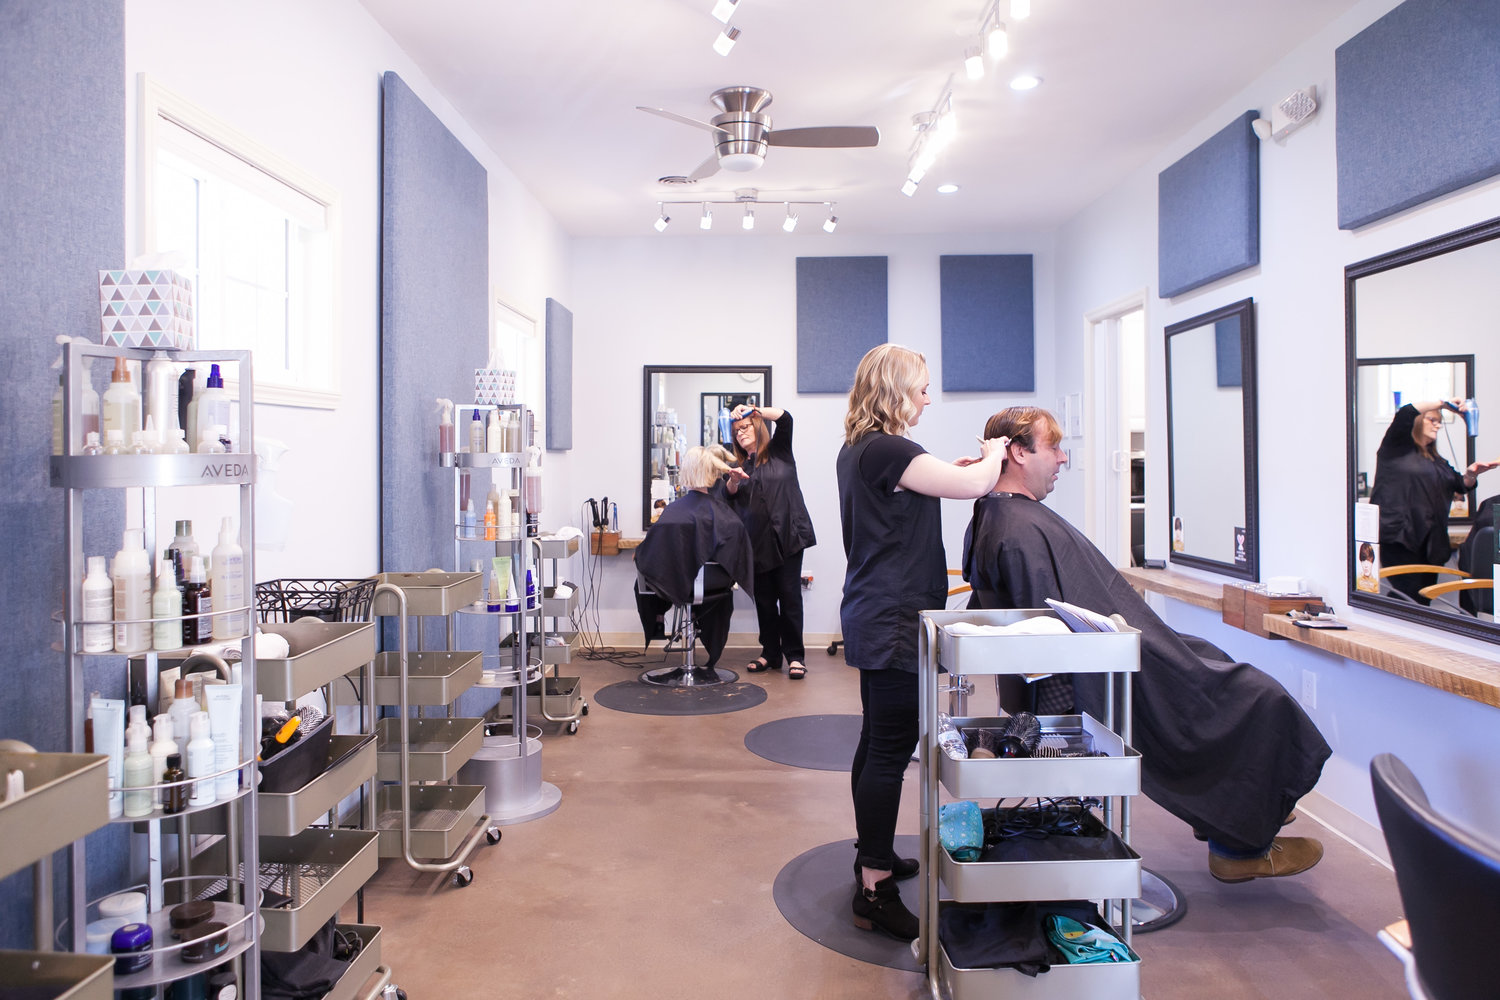 10 people you are guaranteed to meet in a salon